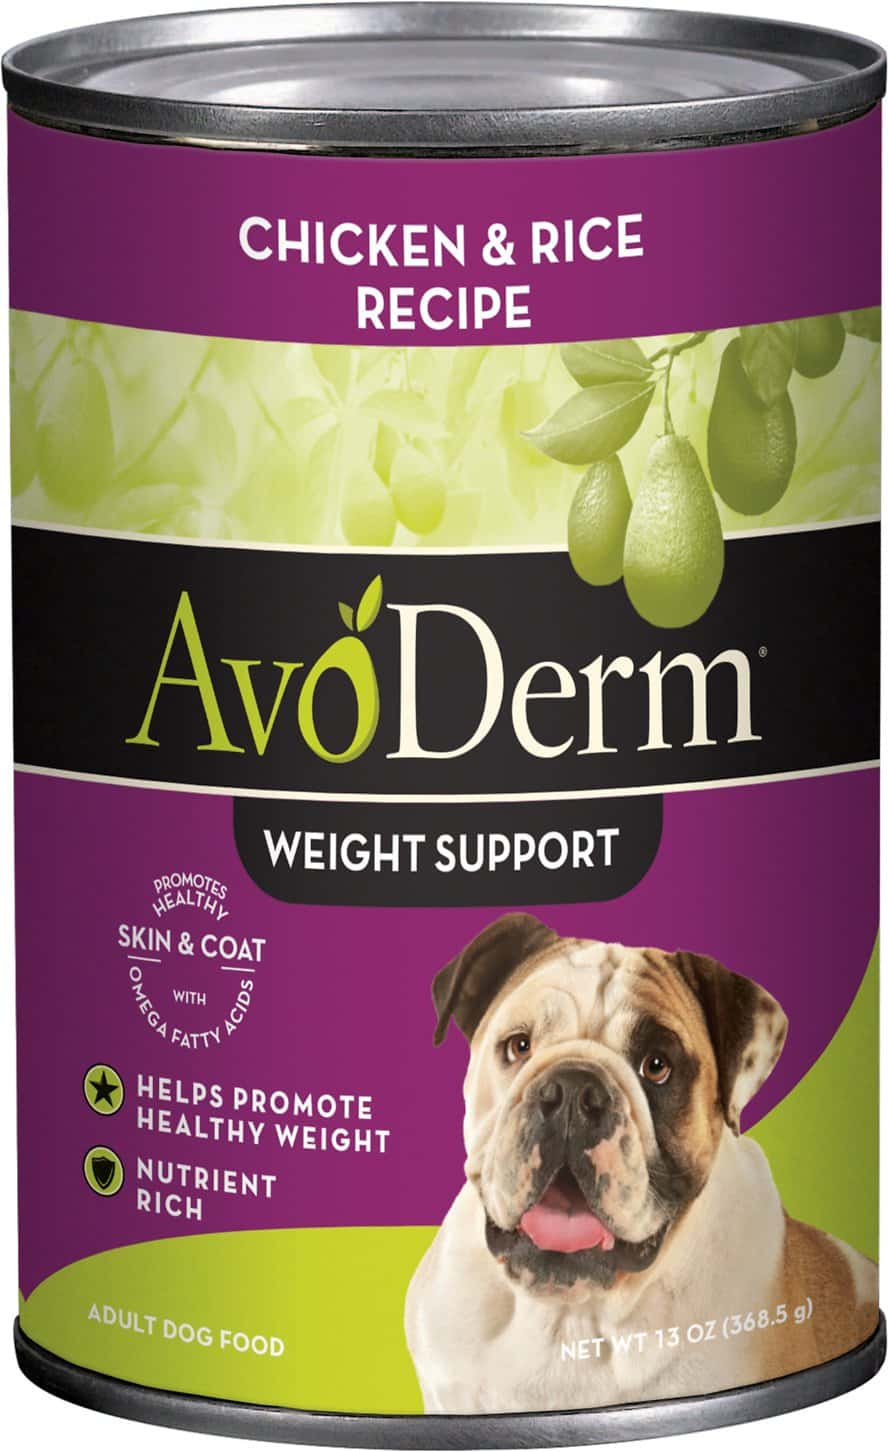 Avoderm Dog Food Review 2021: Is Avocado Best for Dogs? 21